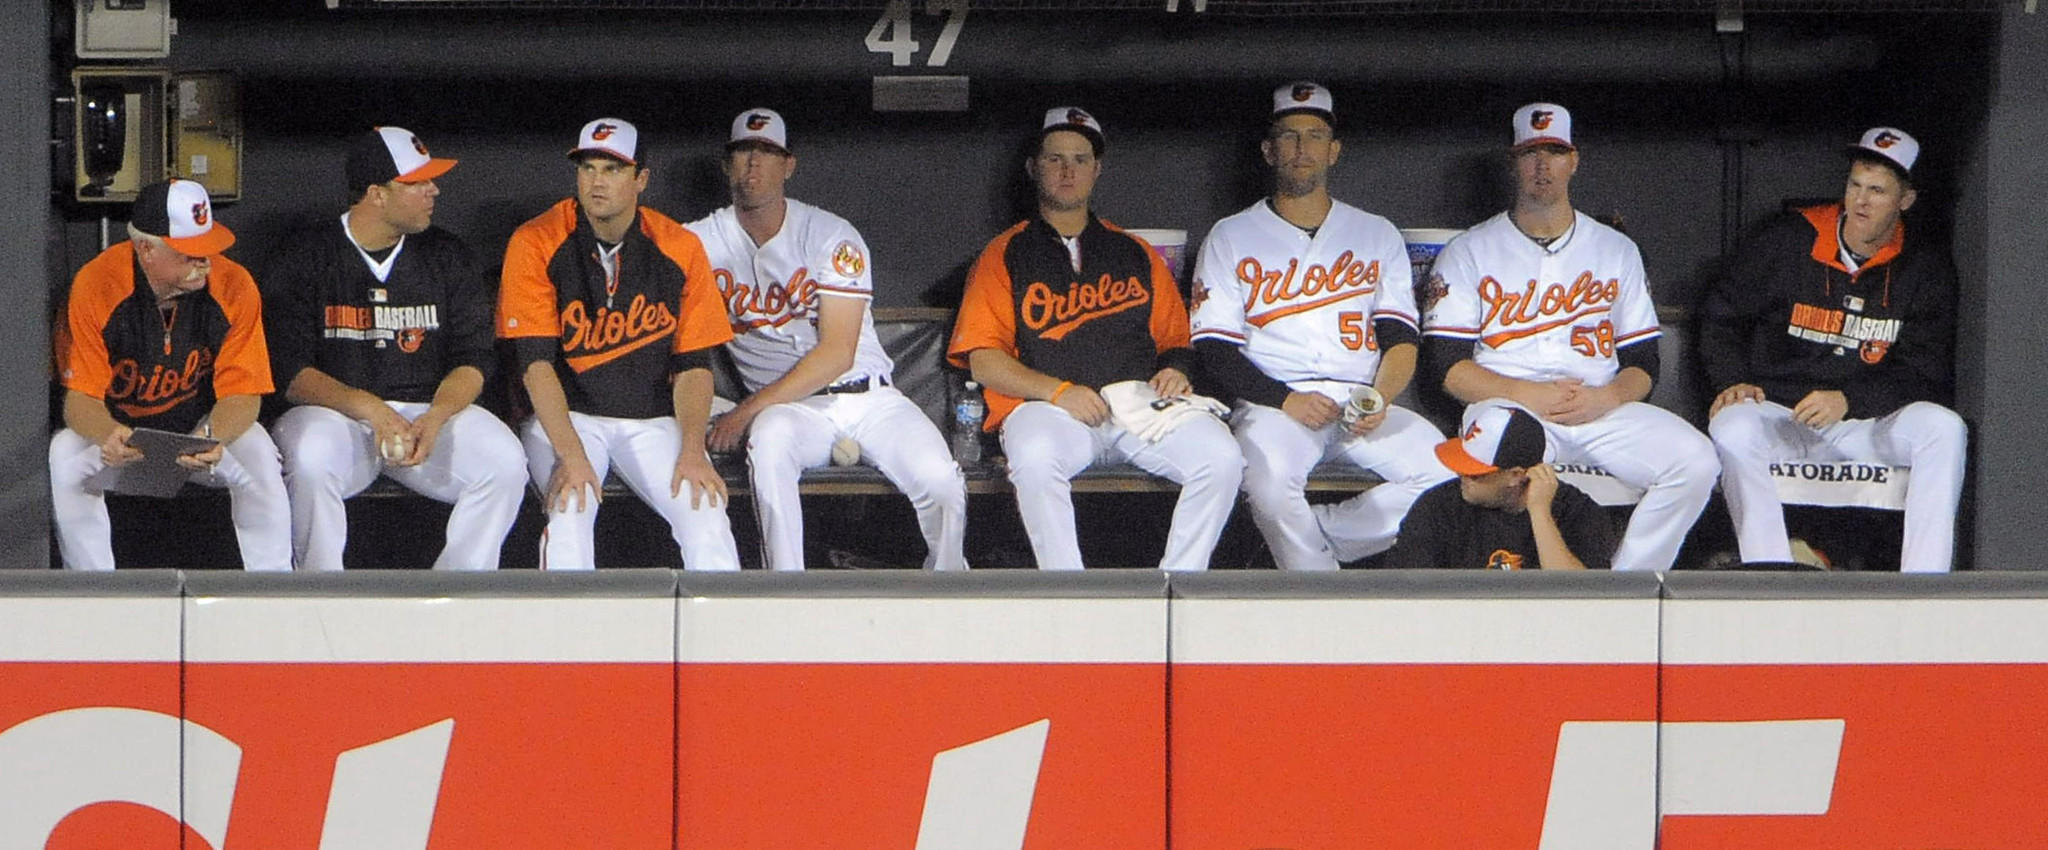 The Orioles bullpen watches Chris Tillman pitch against the Cincinnati Reds earlier this month.